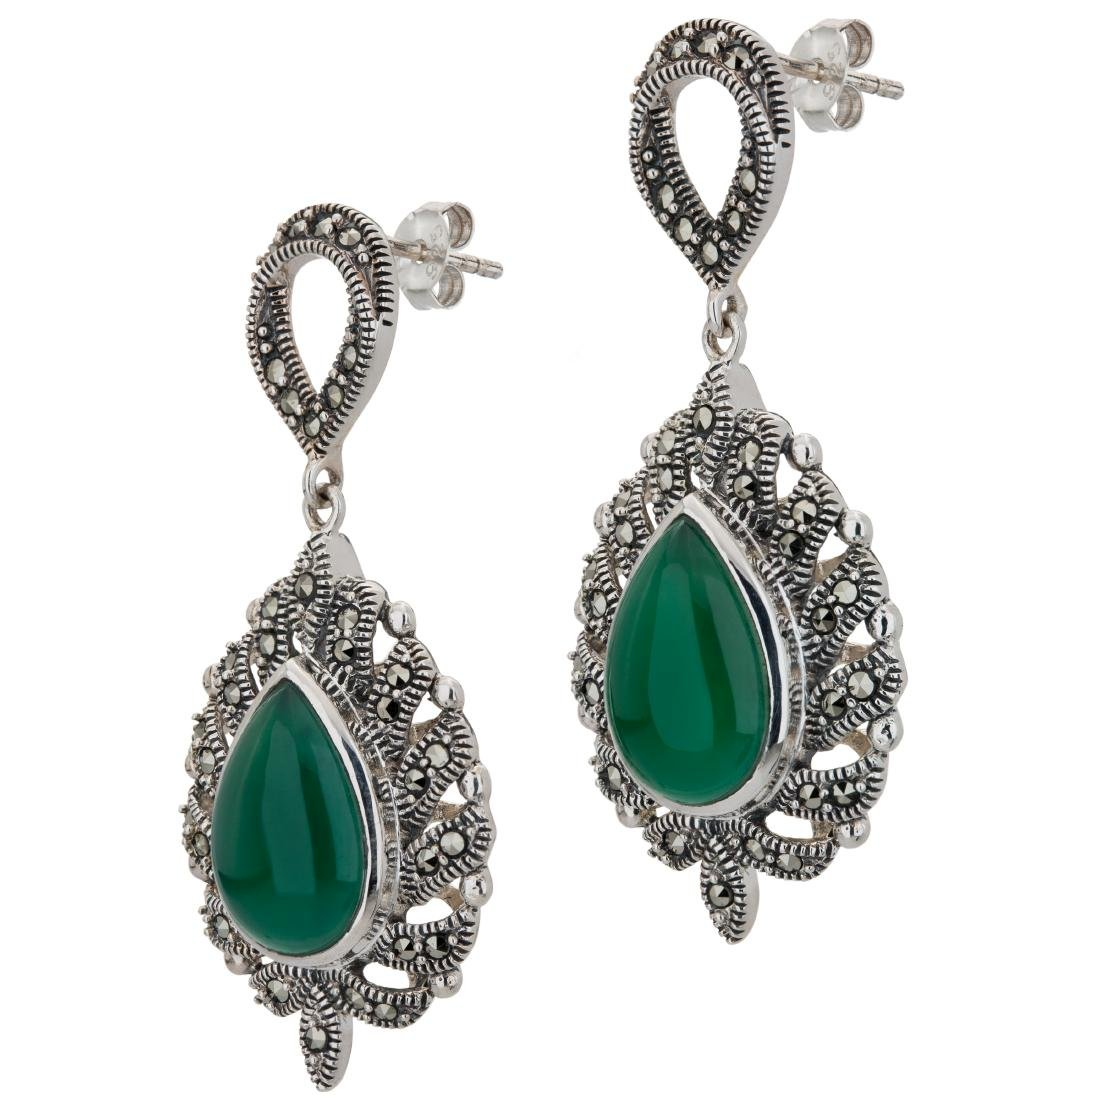 Marcasite and Green Agate Pear Drop Earrings